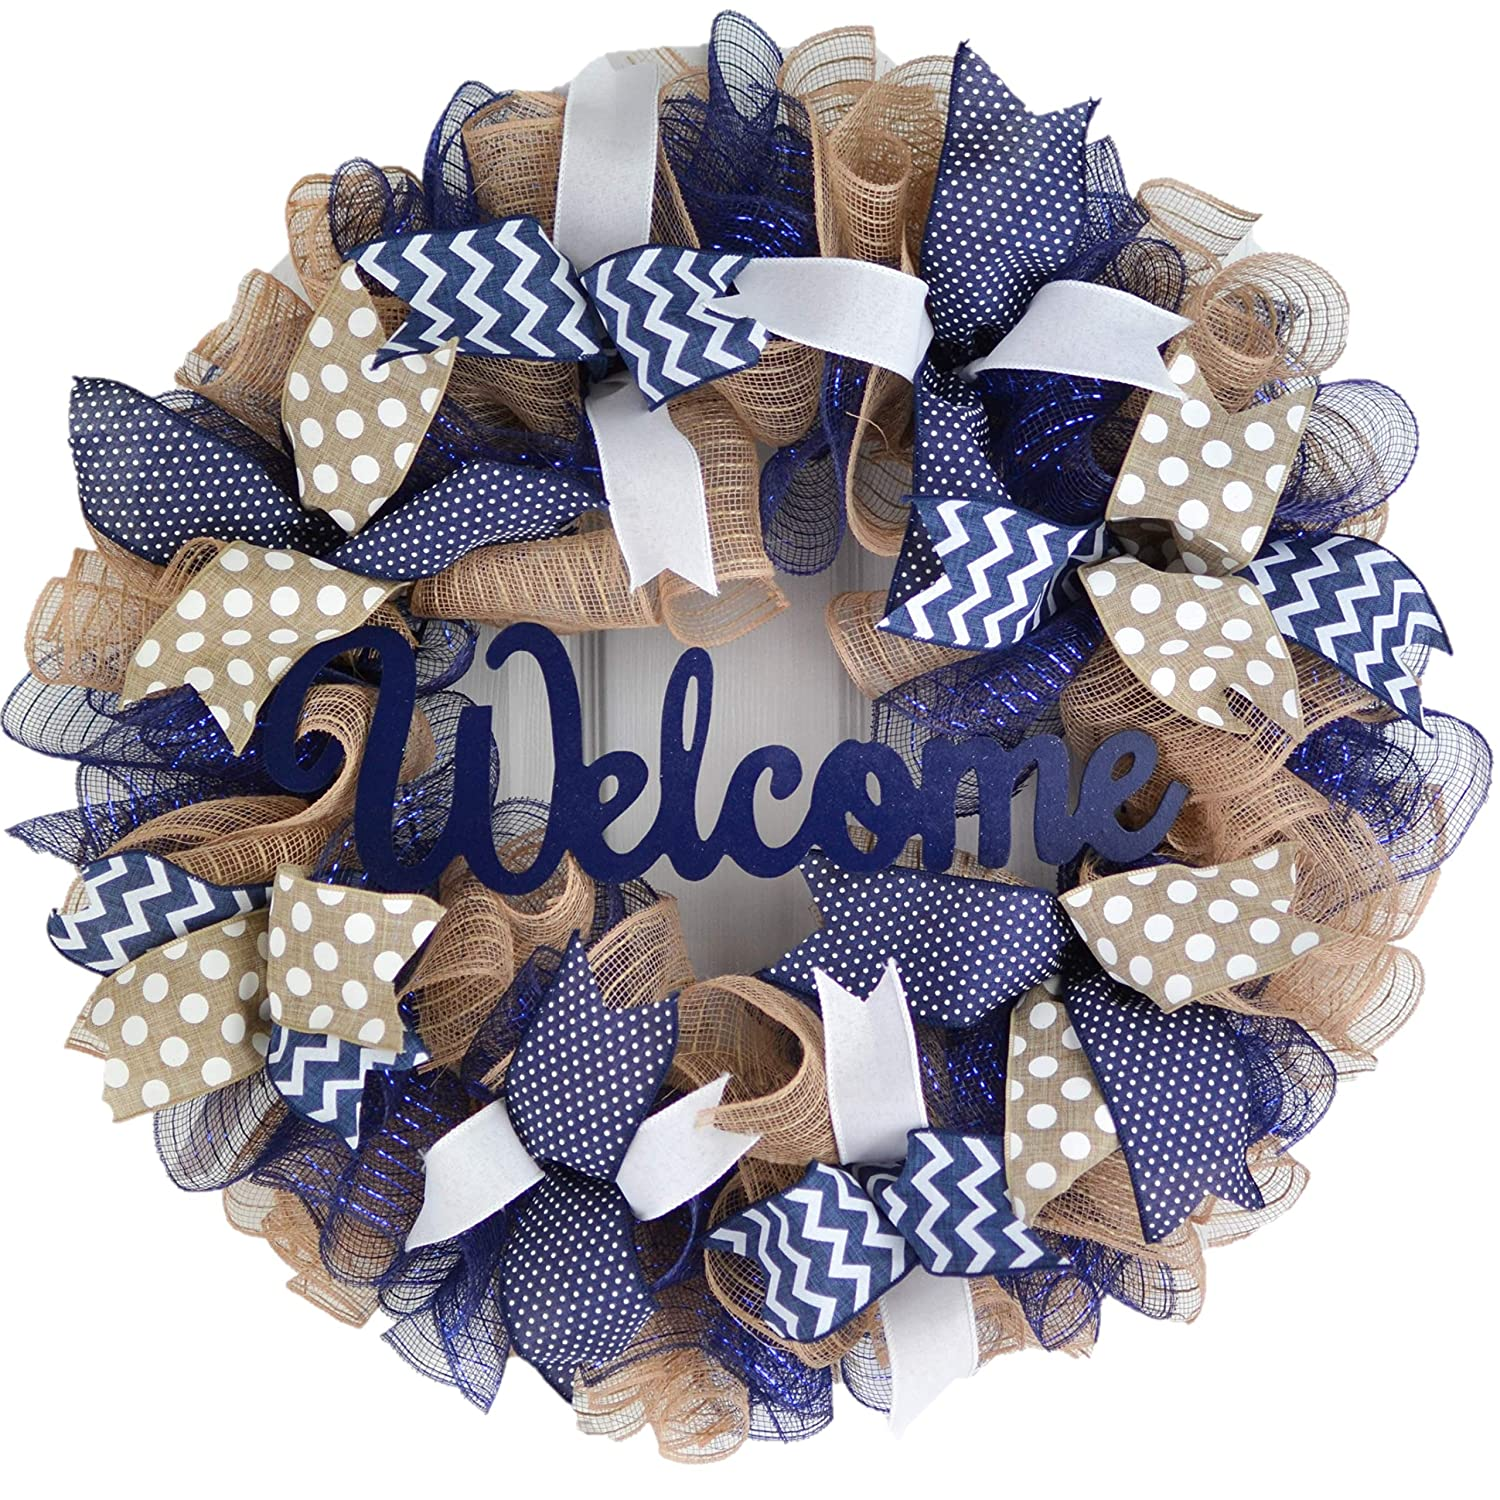 Jute Burlap Max 57% OFF Max 77% OFF Everyday Year Round Welcome Wreath Gi Day Mother's -